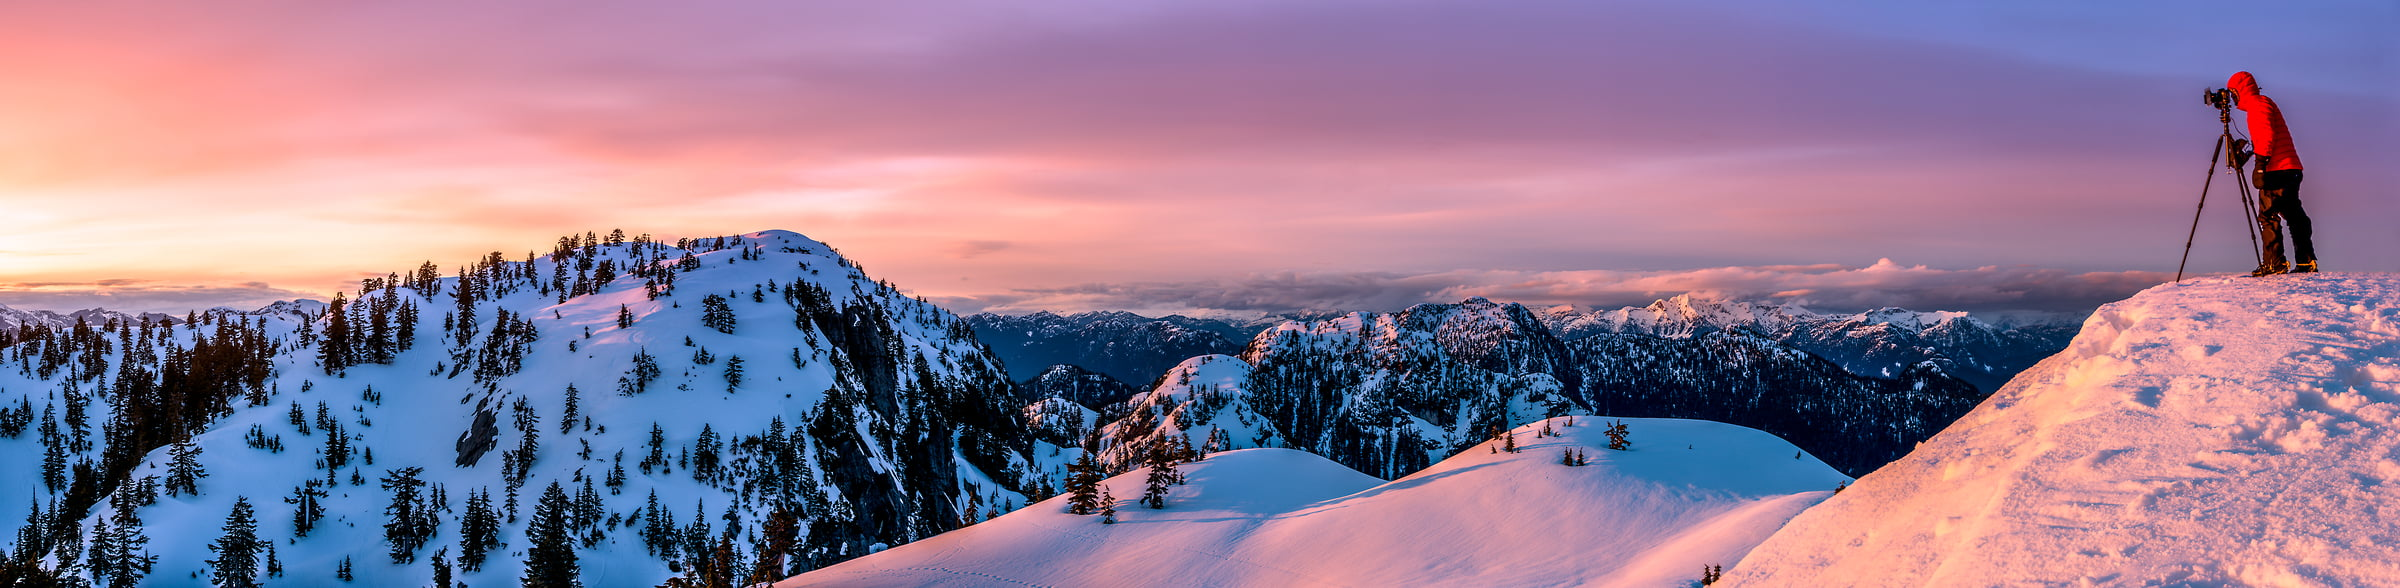 193 megapixels! A very high resolution, large-format VAST photo of a photographer photographing sunset from the summit of Mount Seymour in the North Shore Mountains; fine art landscape photograph created by Tim Shields in the District of North Vancouver, British Columbia, Canada